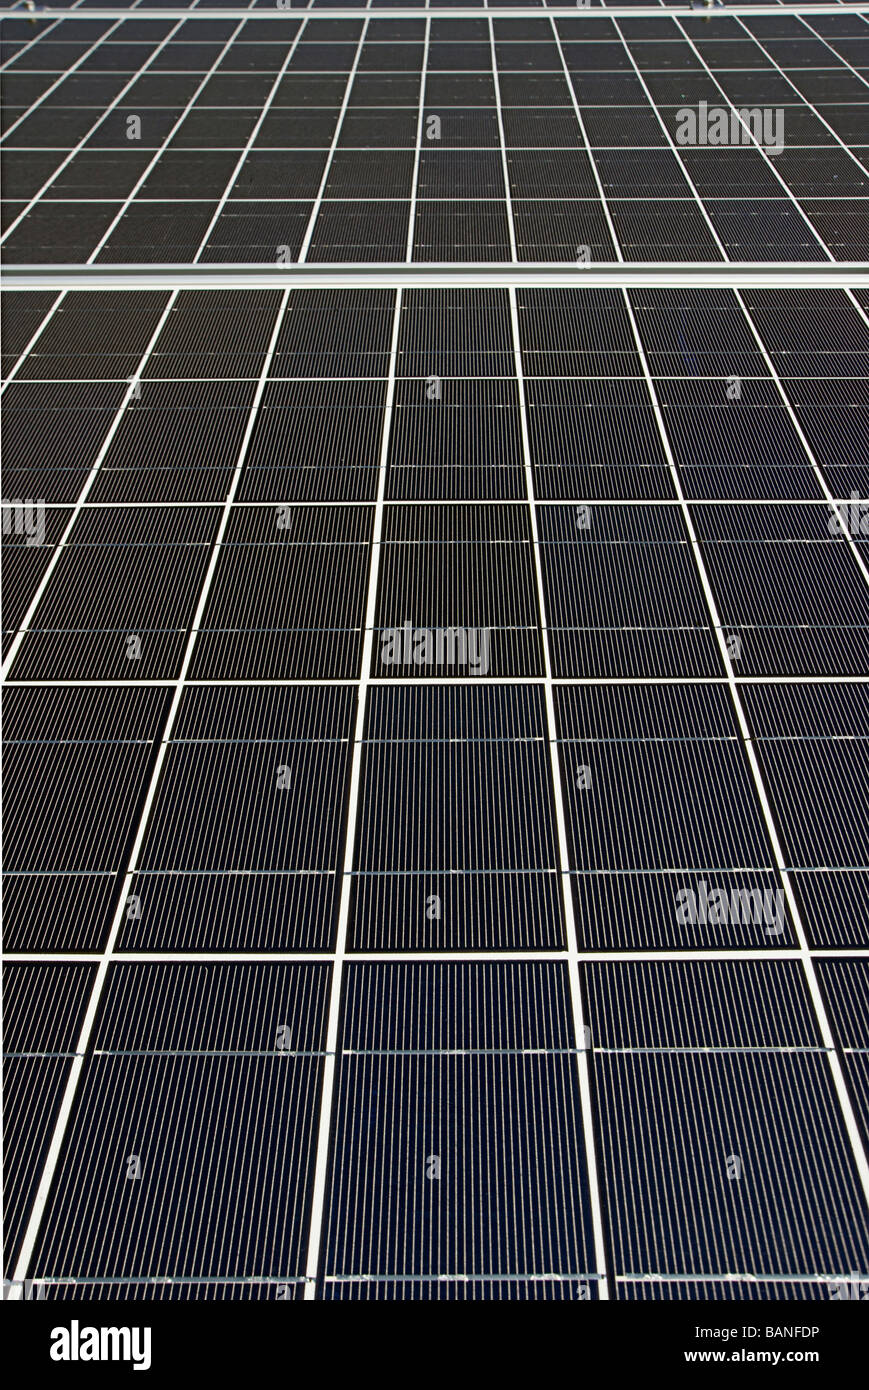 Photovoltaic solar panels mounted on a roof - Stock Image